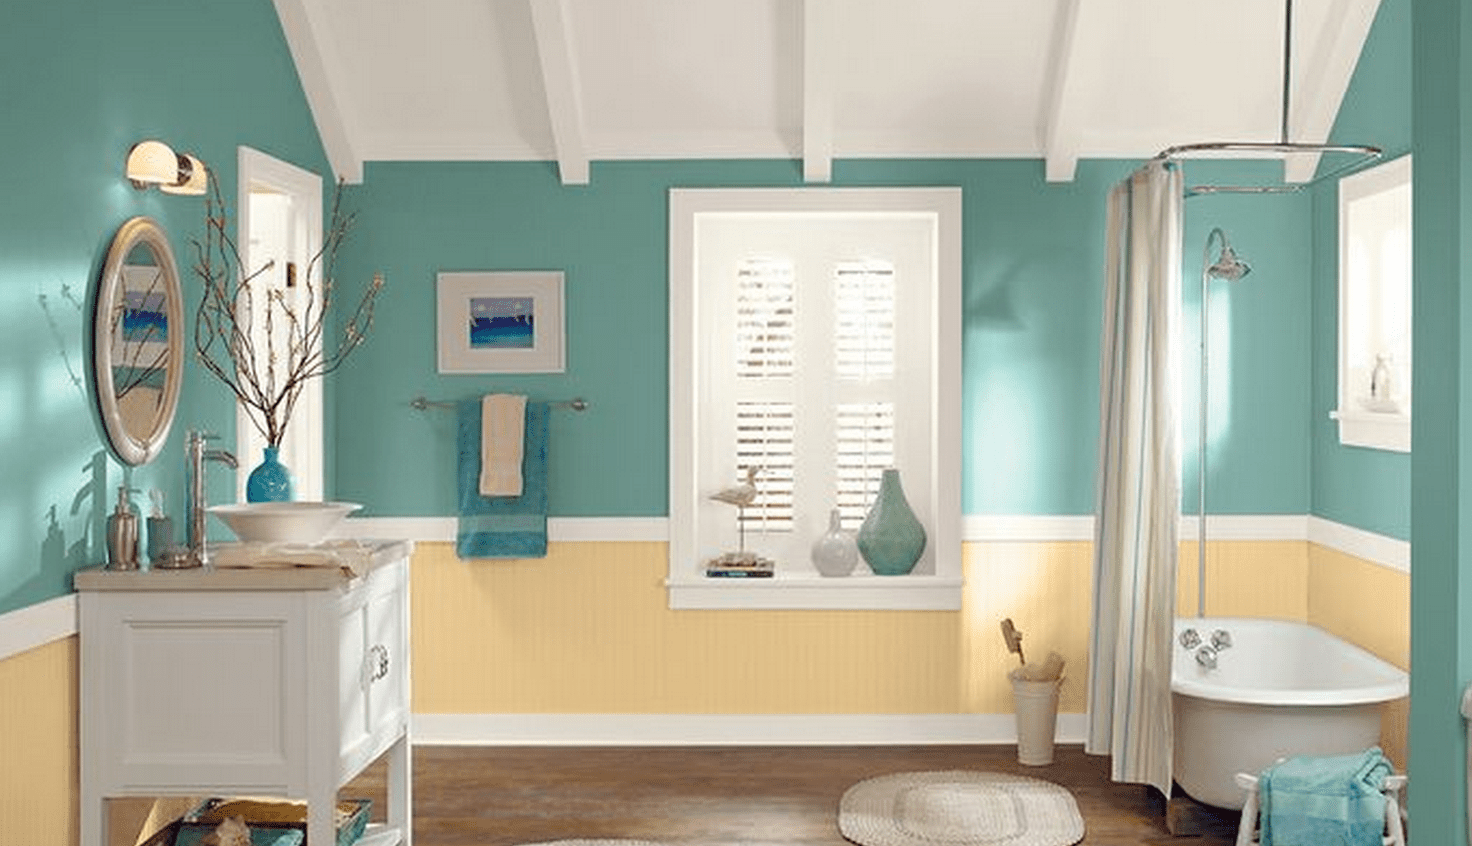 7 Colors That Work Well For Painting A Bathroom